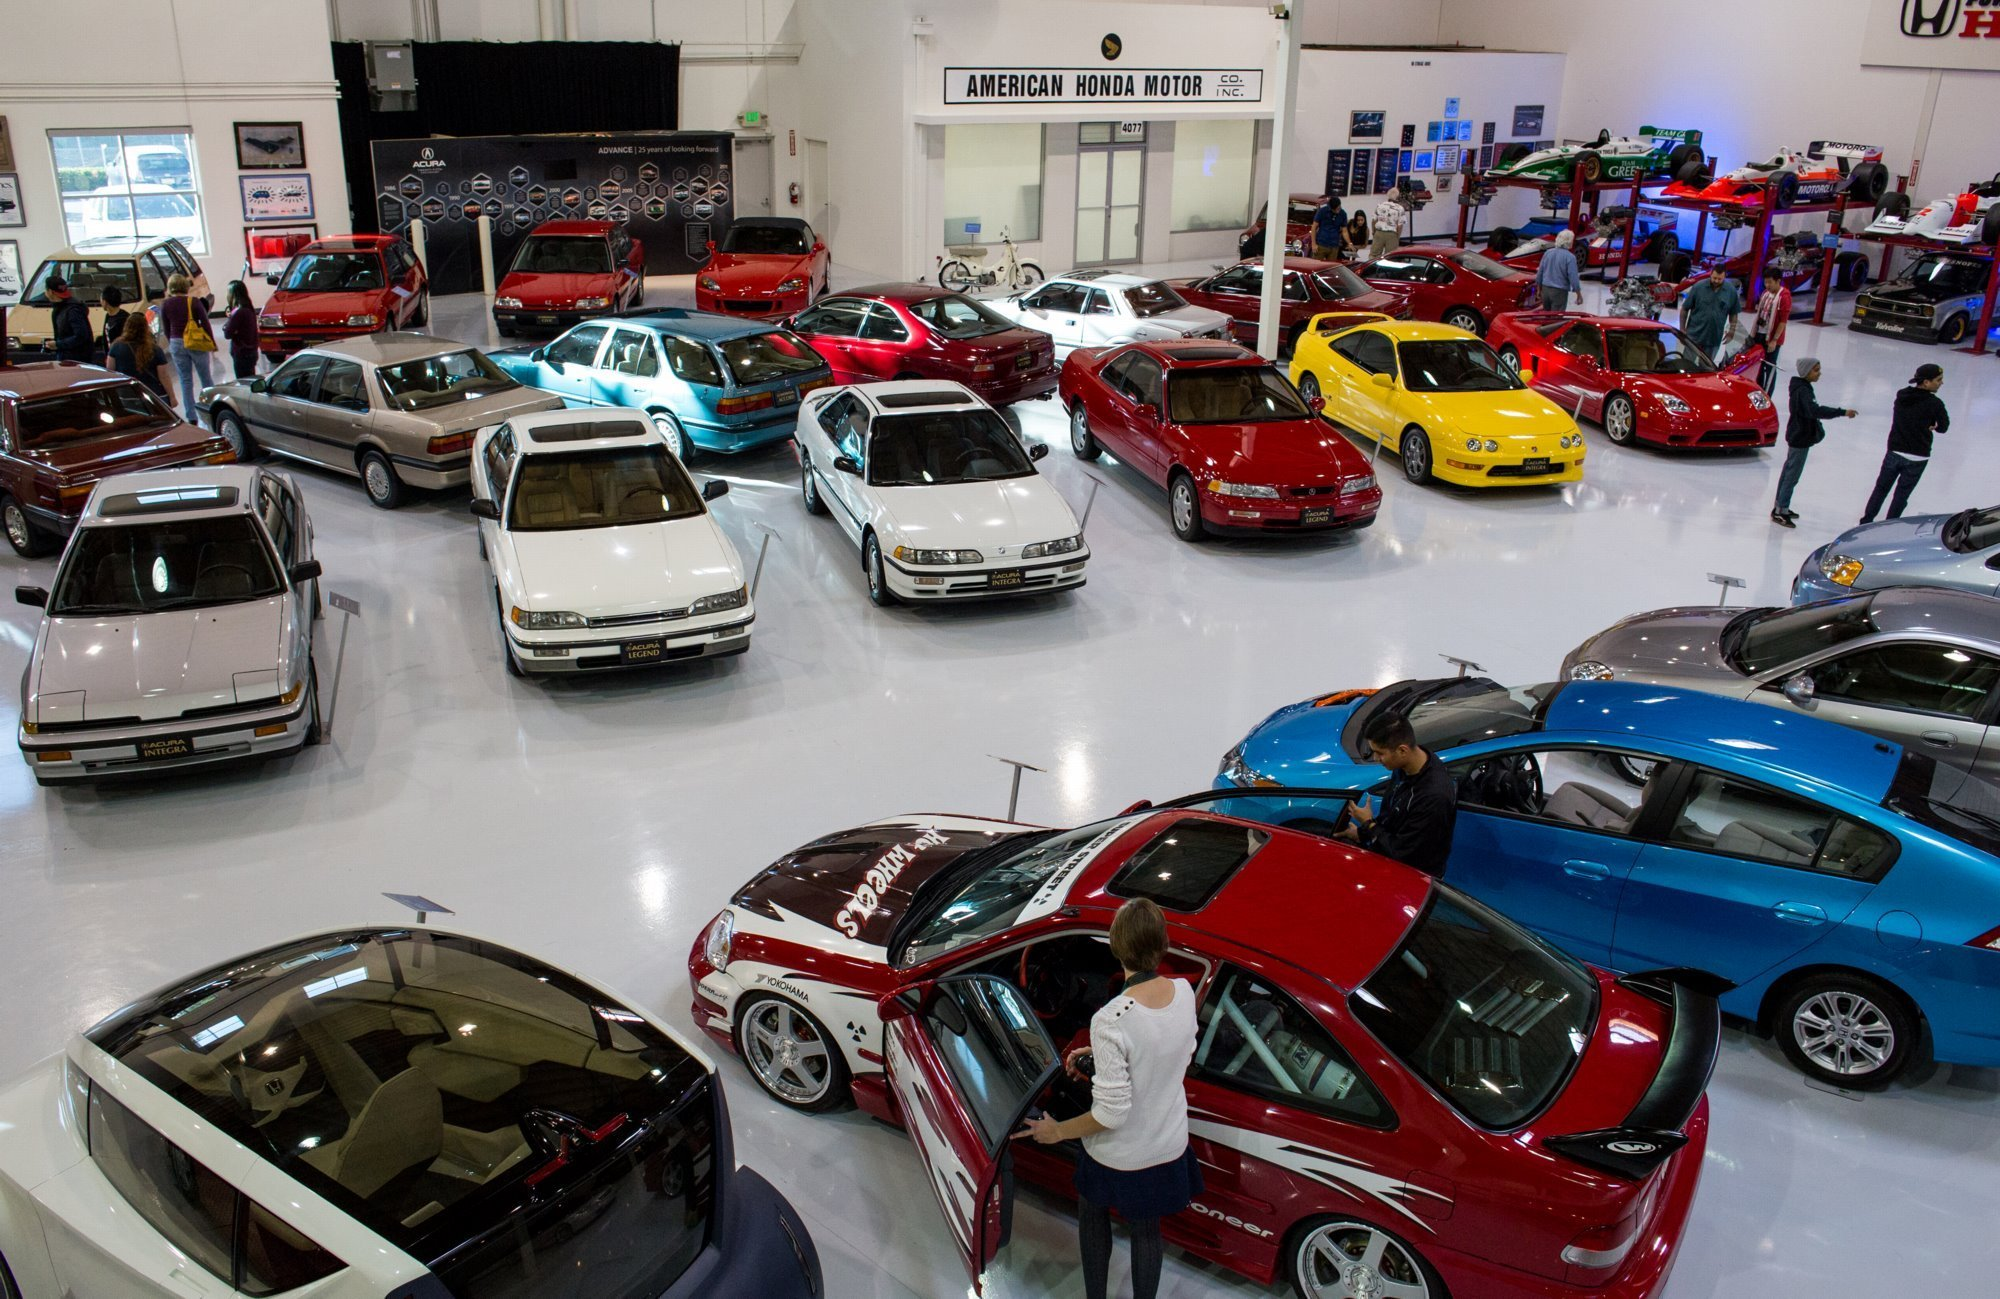 Last Year The Honda Museum In Torrance CA Had A Sort Of Rare Open House